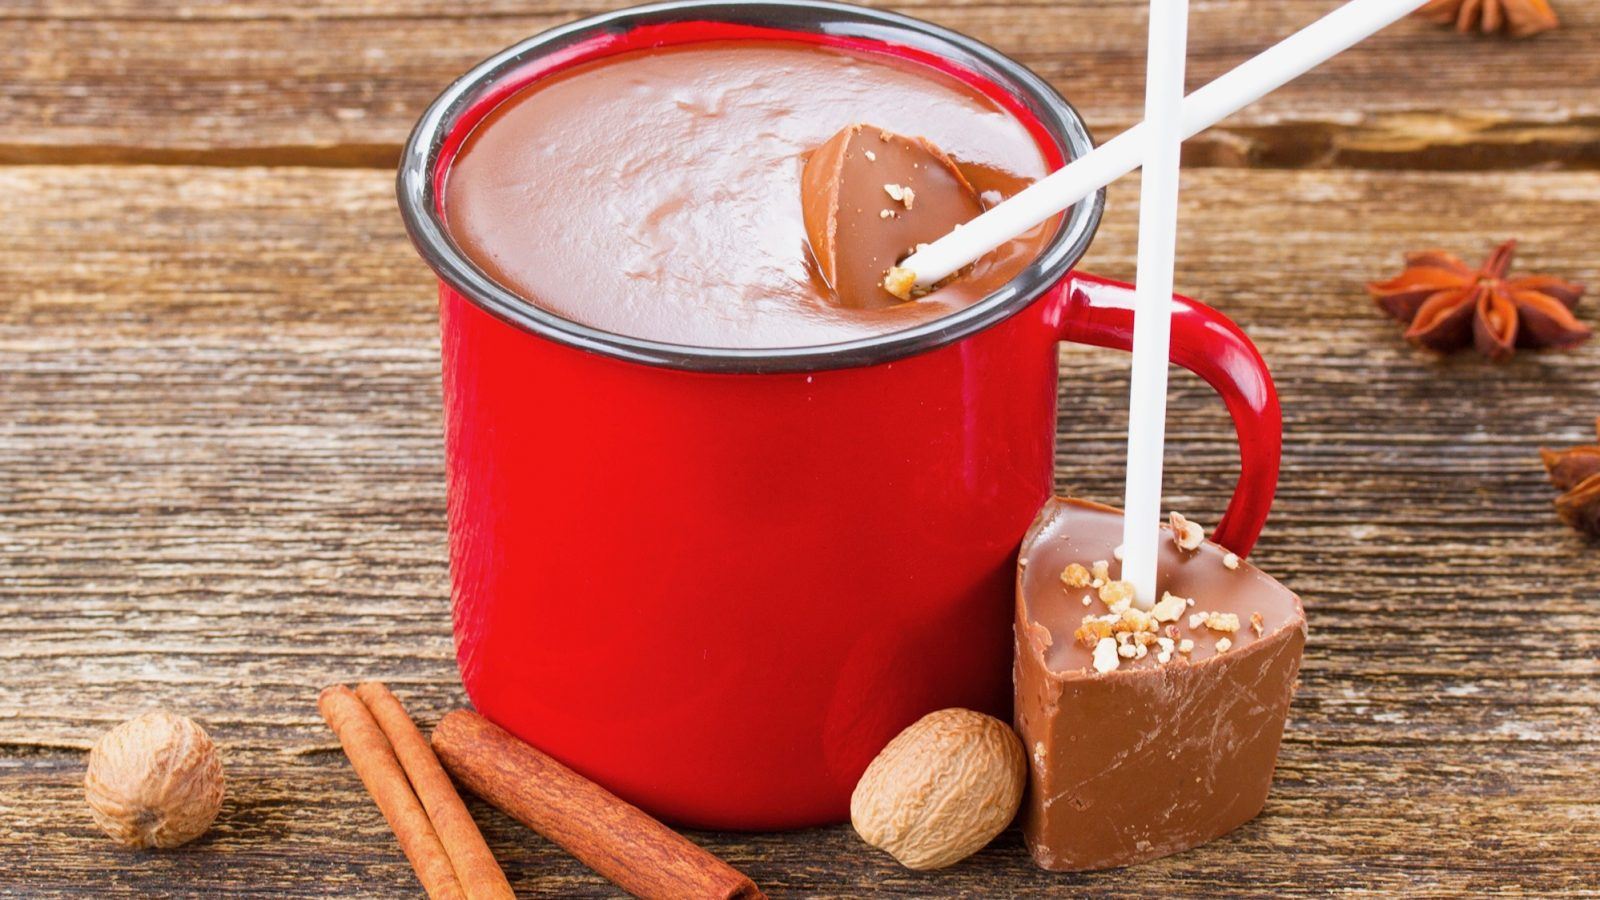 hot chocolate sticks that are vegan being dipped into a red mug